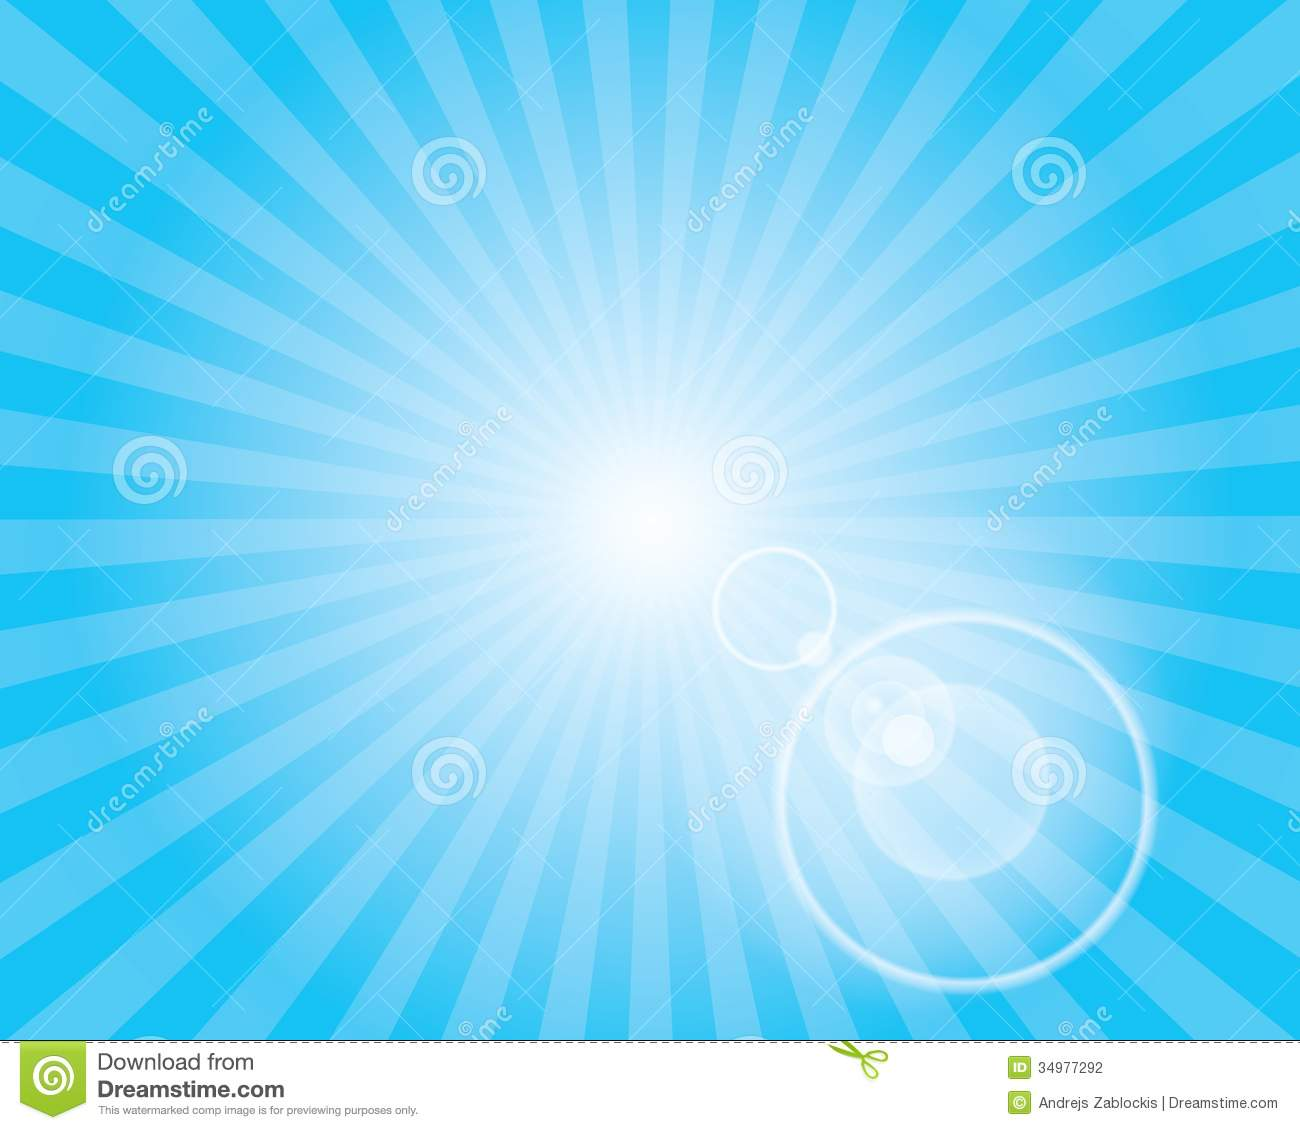 Ice Cream Wallpaper In Soft Blues And Multi From The Dream: Sun Sunburst Pattern With Lens Flare. Blue Sky. Stock